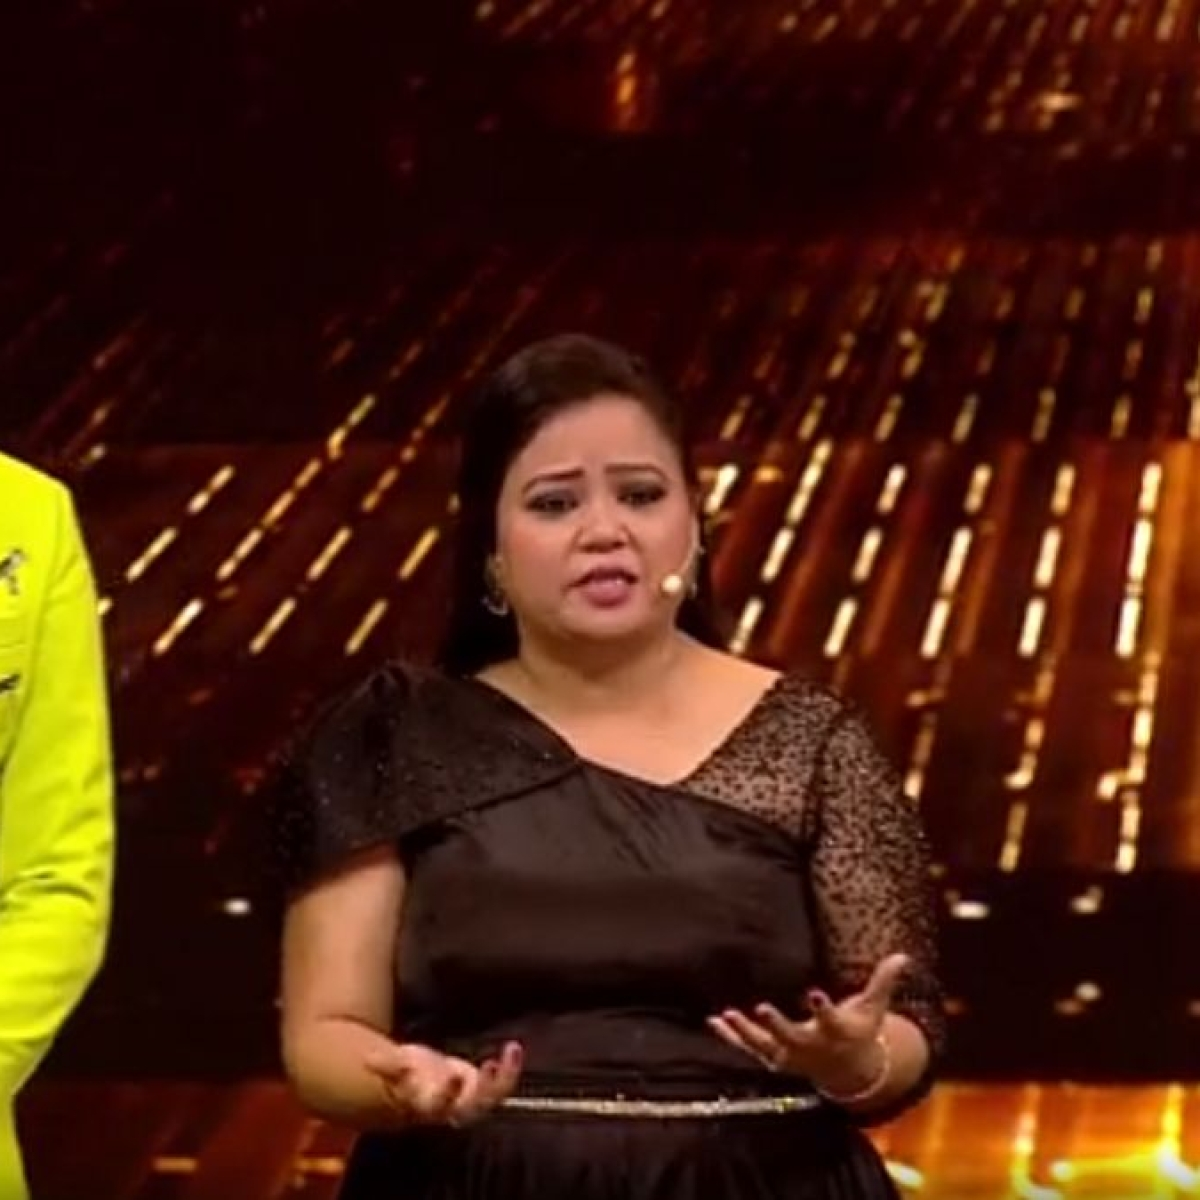 Watch: Bharti Singh breaks down on reality show, says 'she is afraid of starting a family' amid COVID-19 crisis